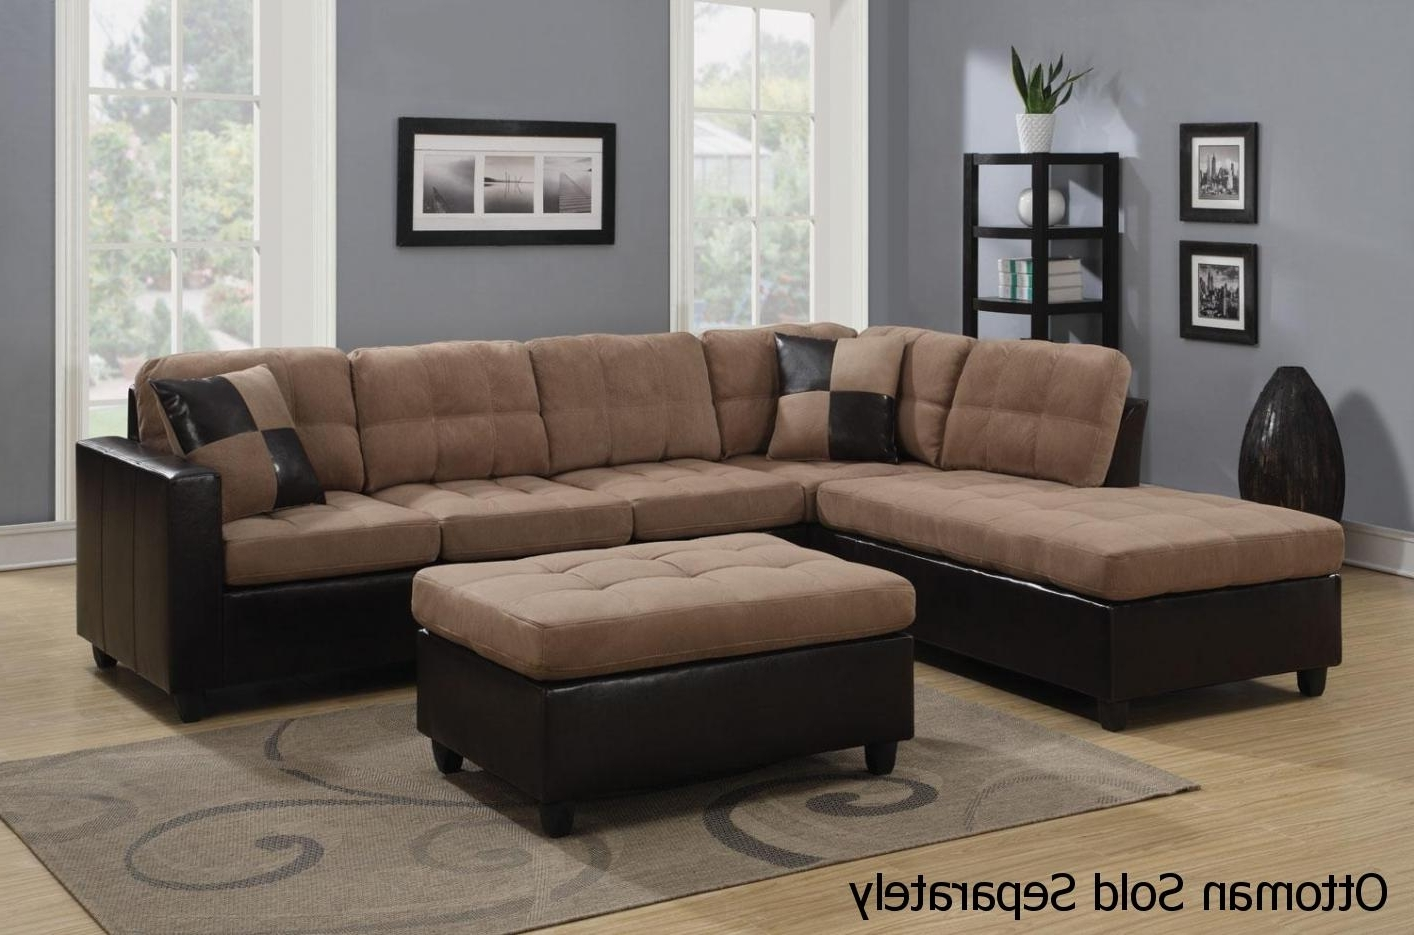 Sectional Sofas Regarding Most Popular Mallory Beige Leather Sectional Sofa – Steal A Sofa Furniture (View 7 of 15)